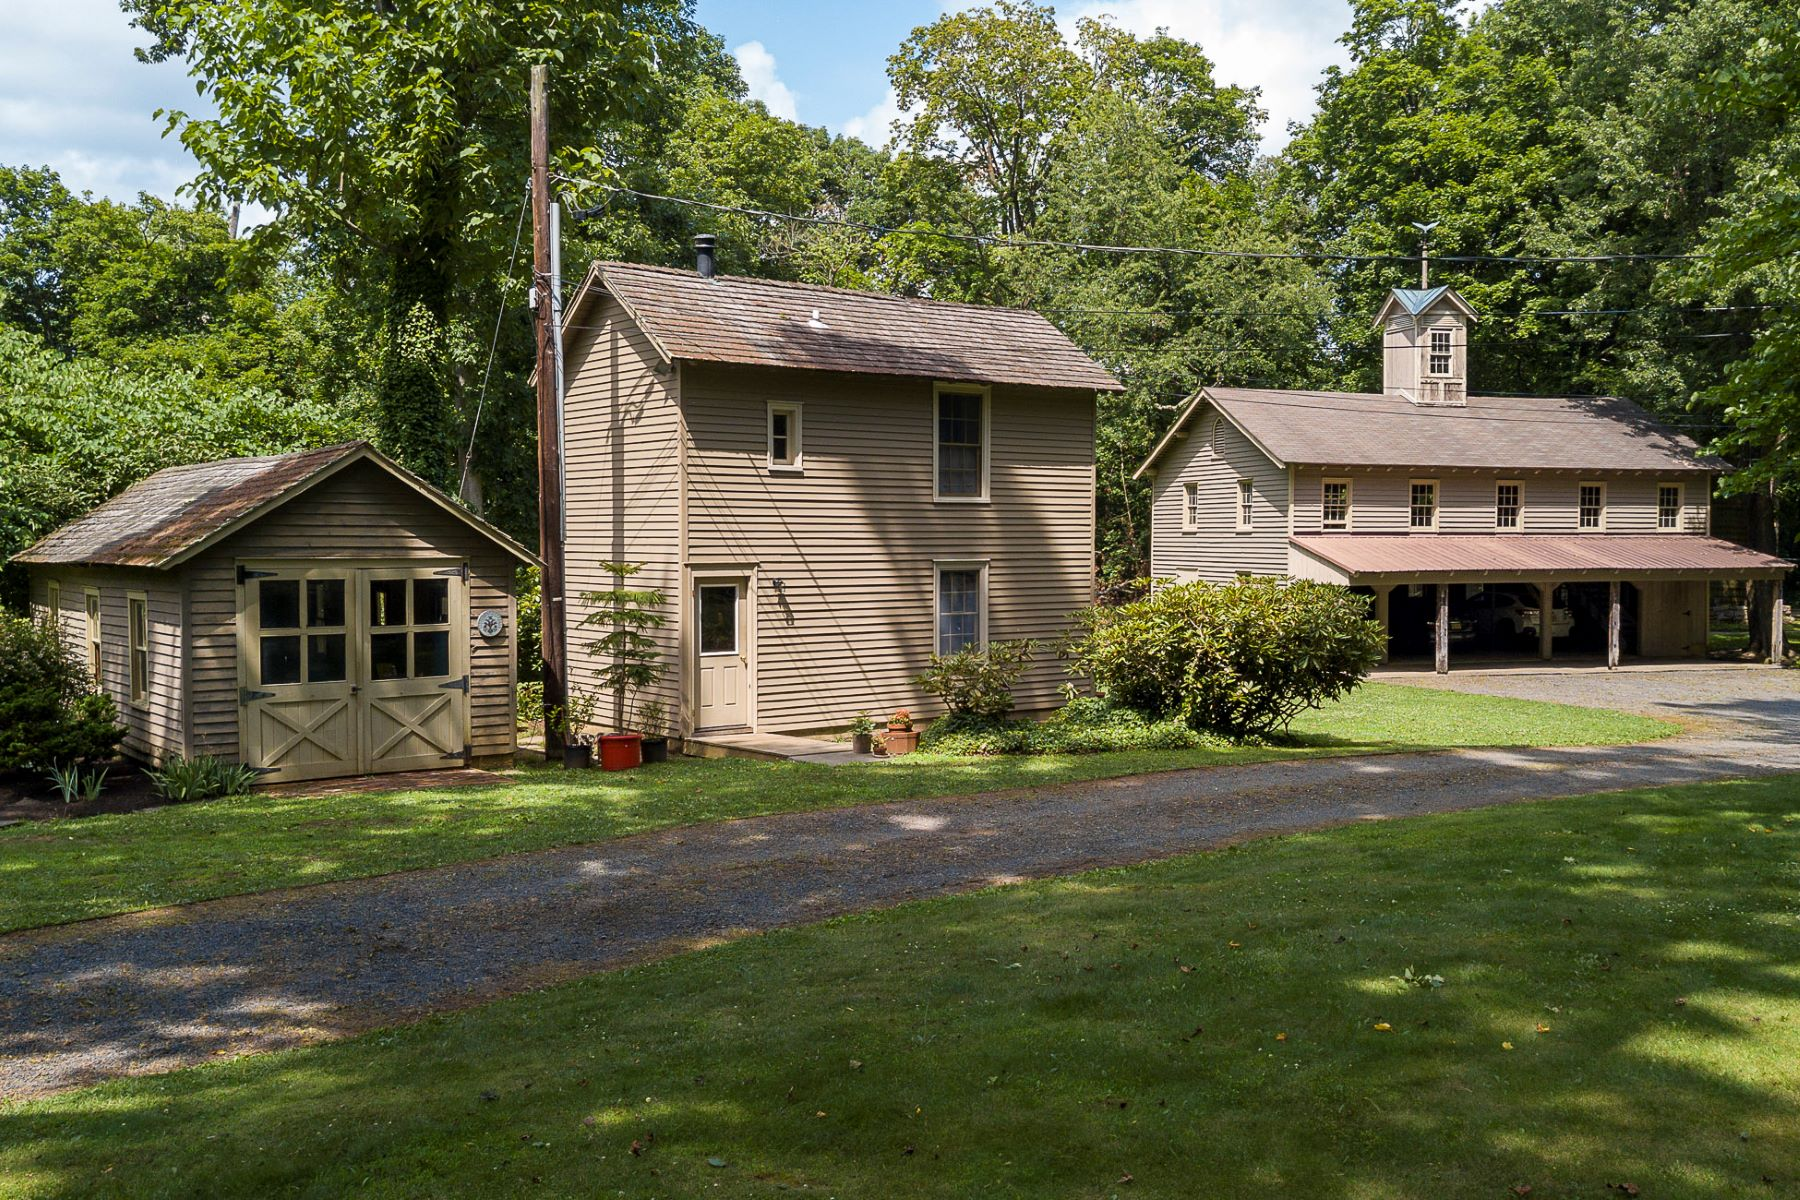 Additional photo for property listing at Crosswicks Compound - A Village of Its Own 423 Ellisdale Road, Crosswicks, New Jersey 08515 États-Unis